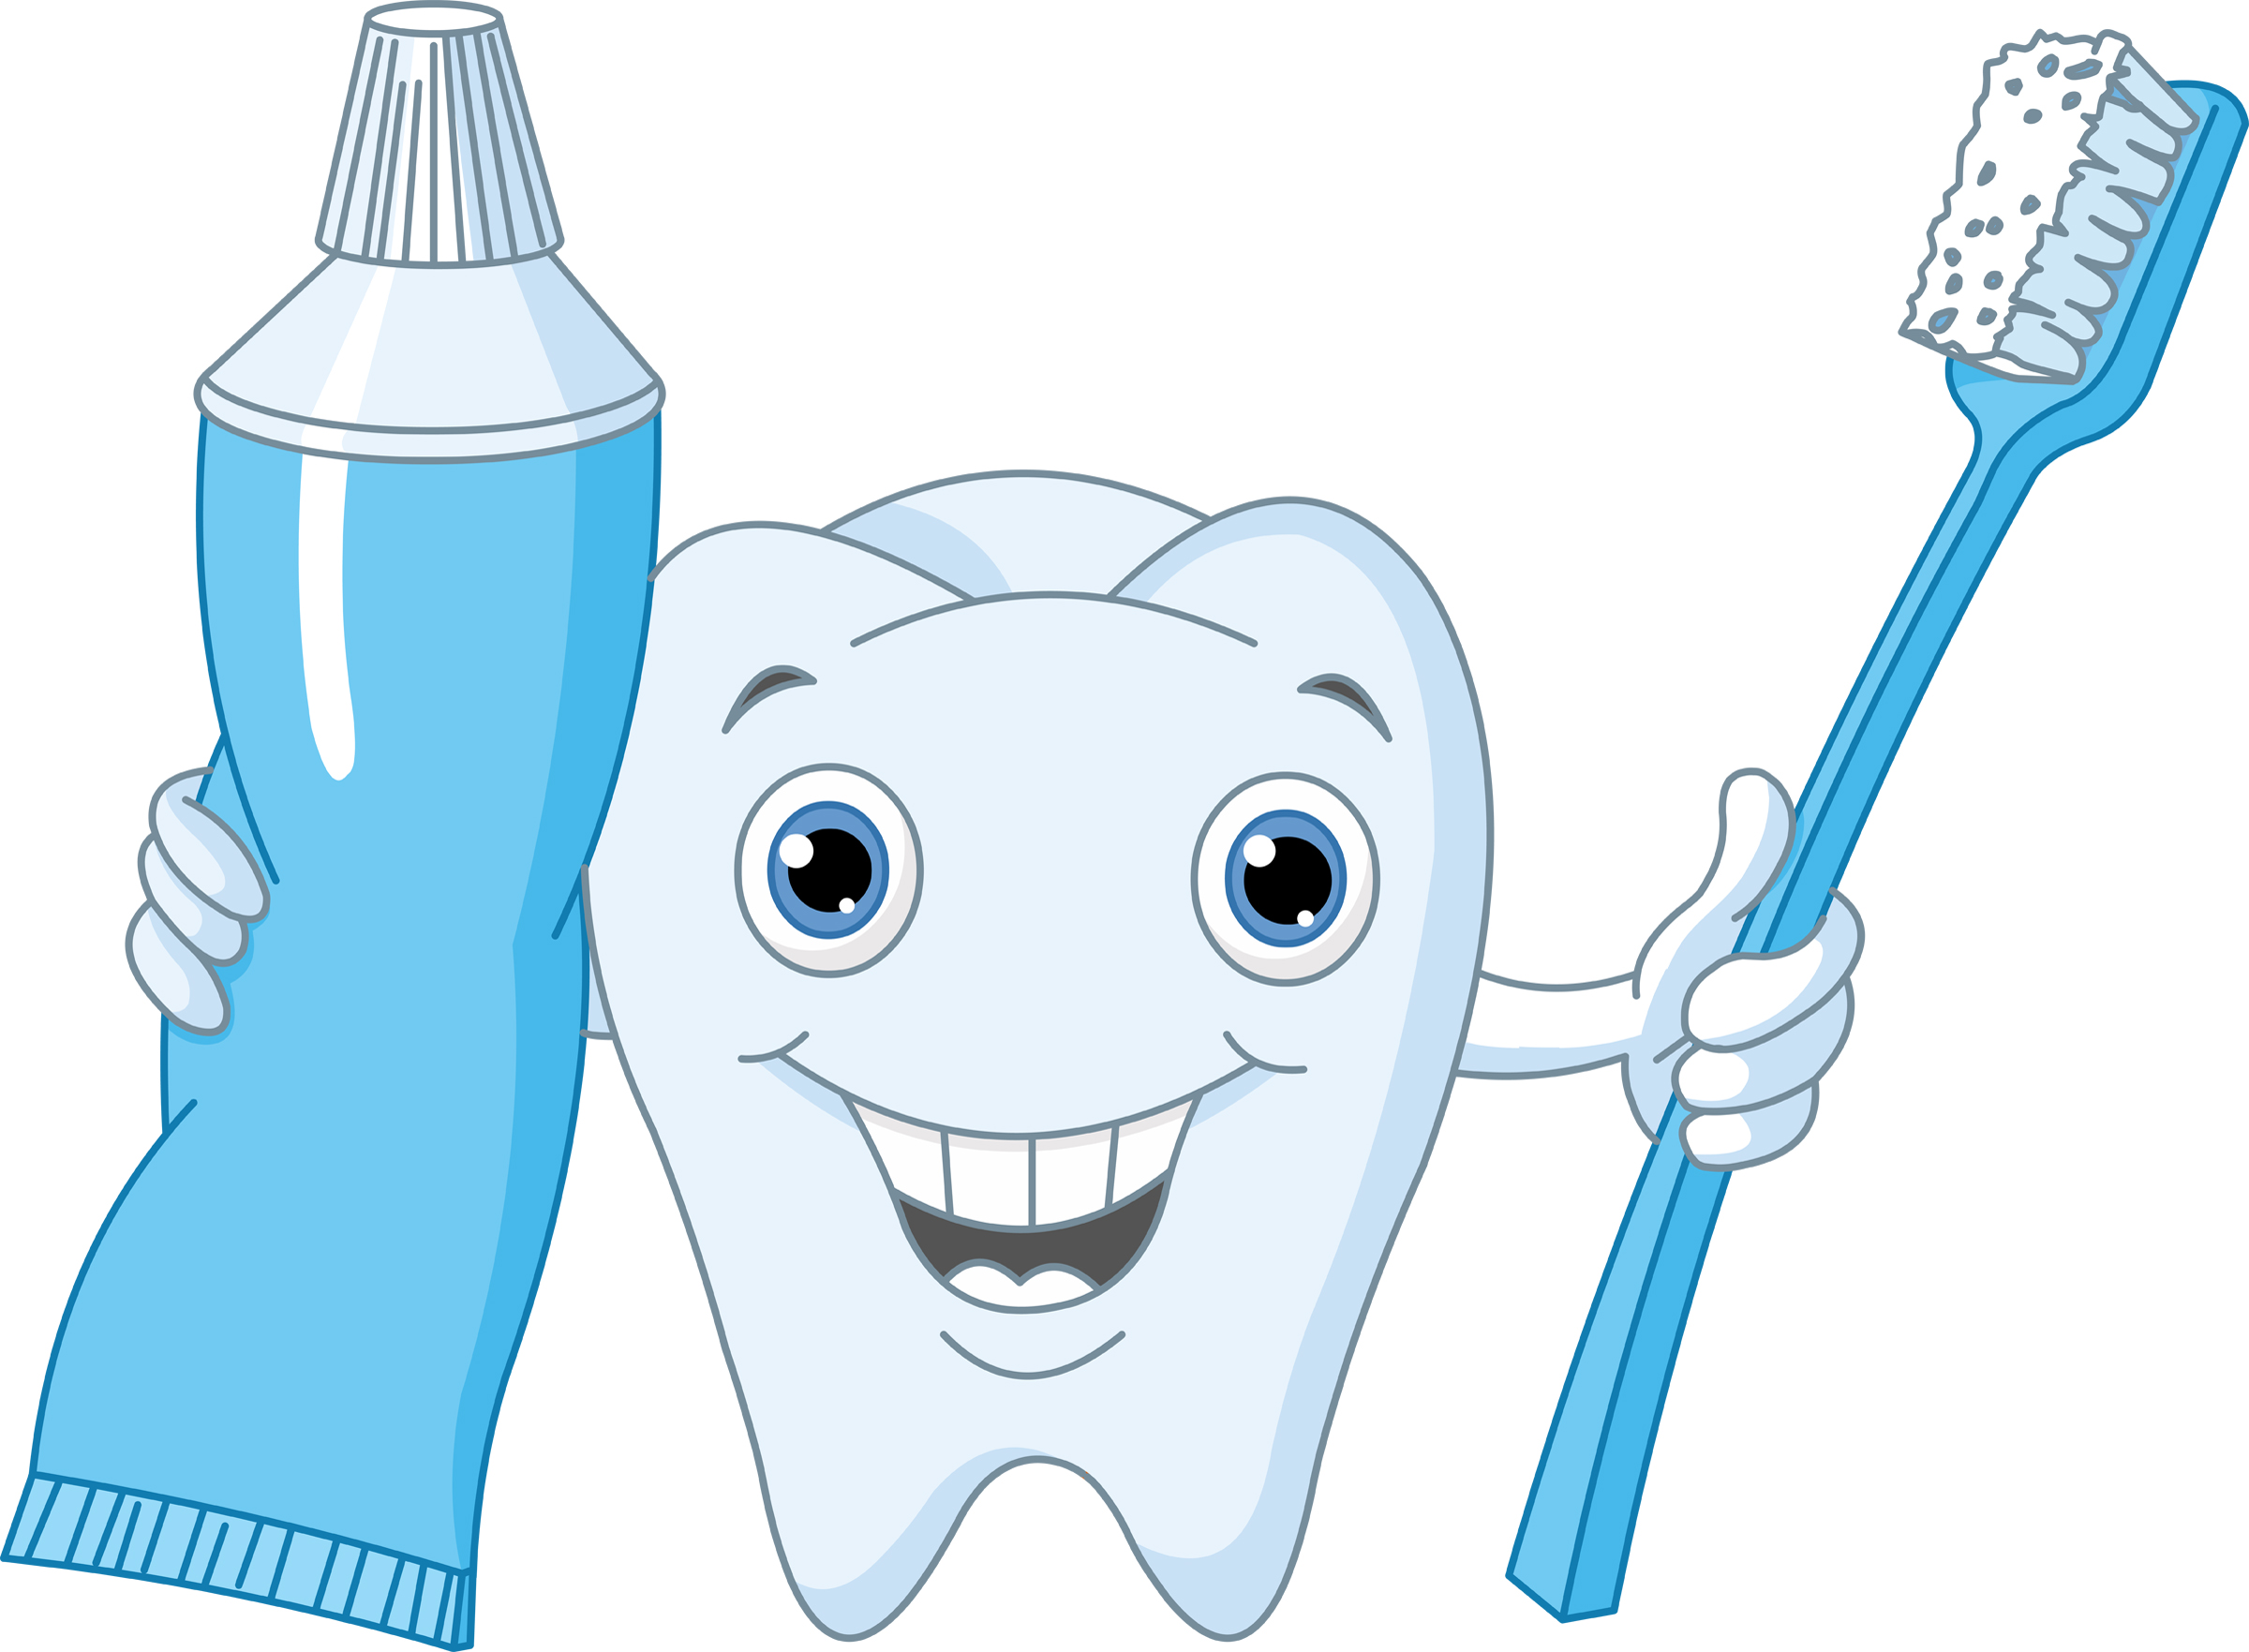 Toothbrush clipart dental care #6